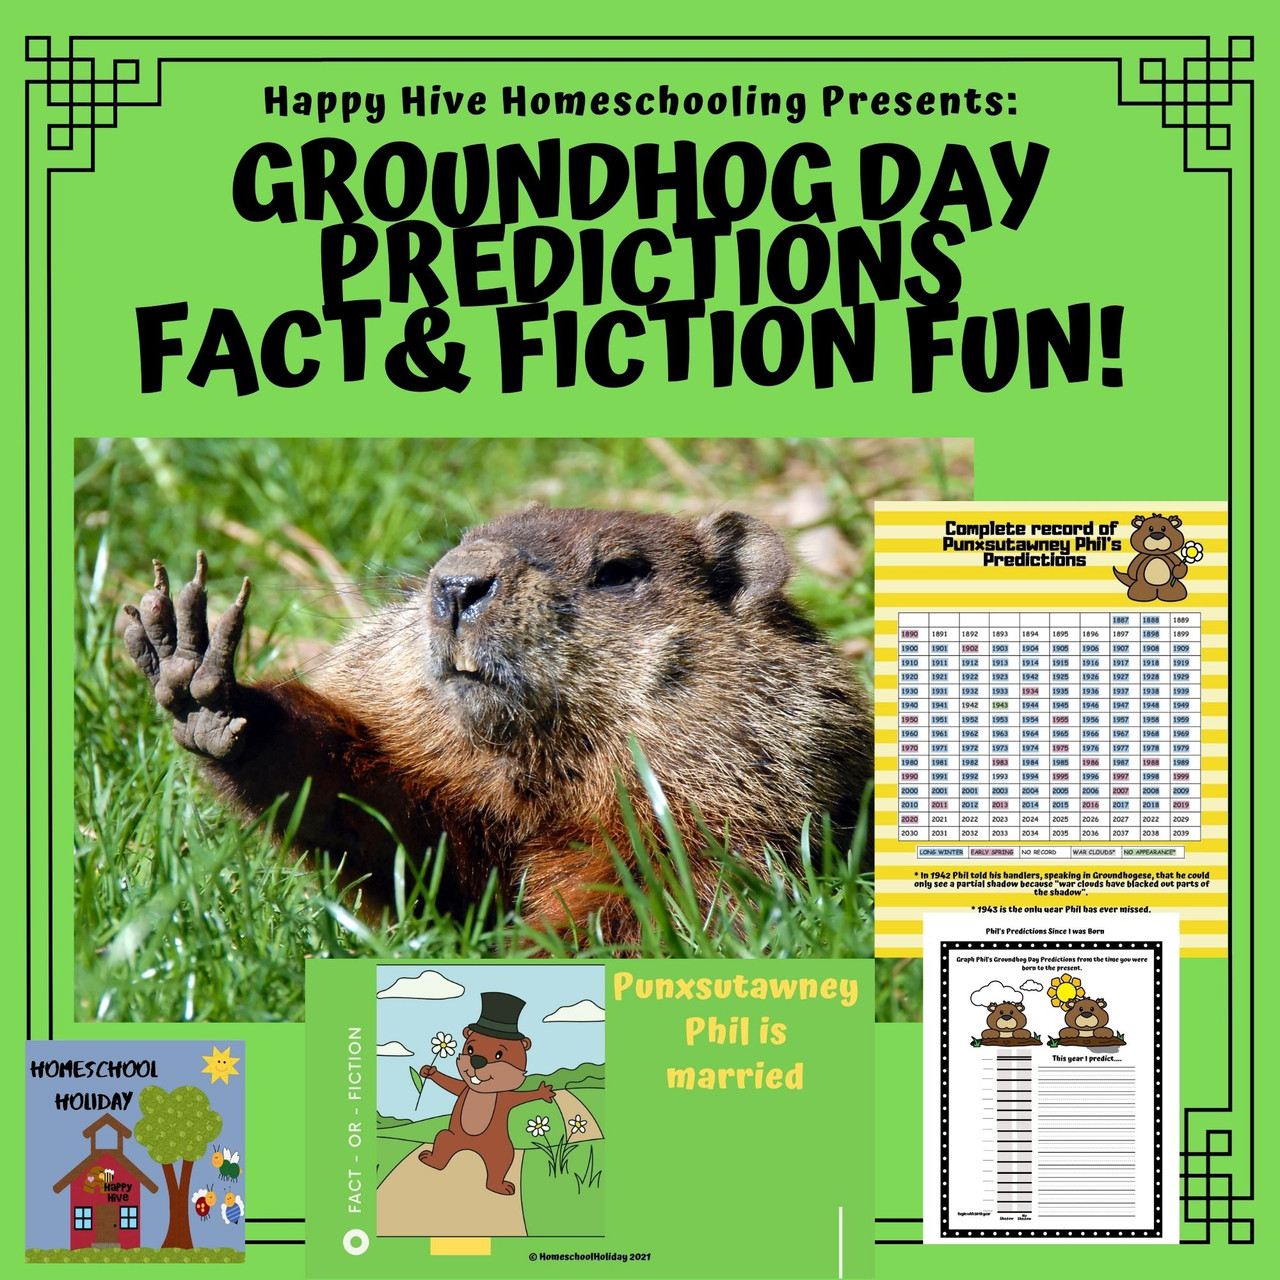 hight resolution of Groundhog Day Groundhog Prediction \u0026 Fun Facts Presentation Activities  Google Slides - Amped Up Learning